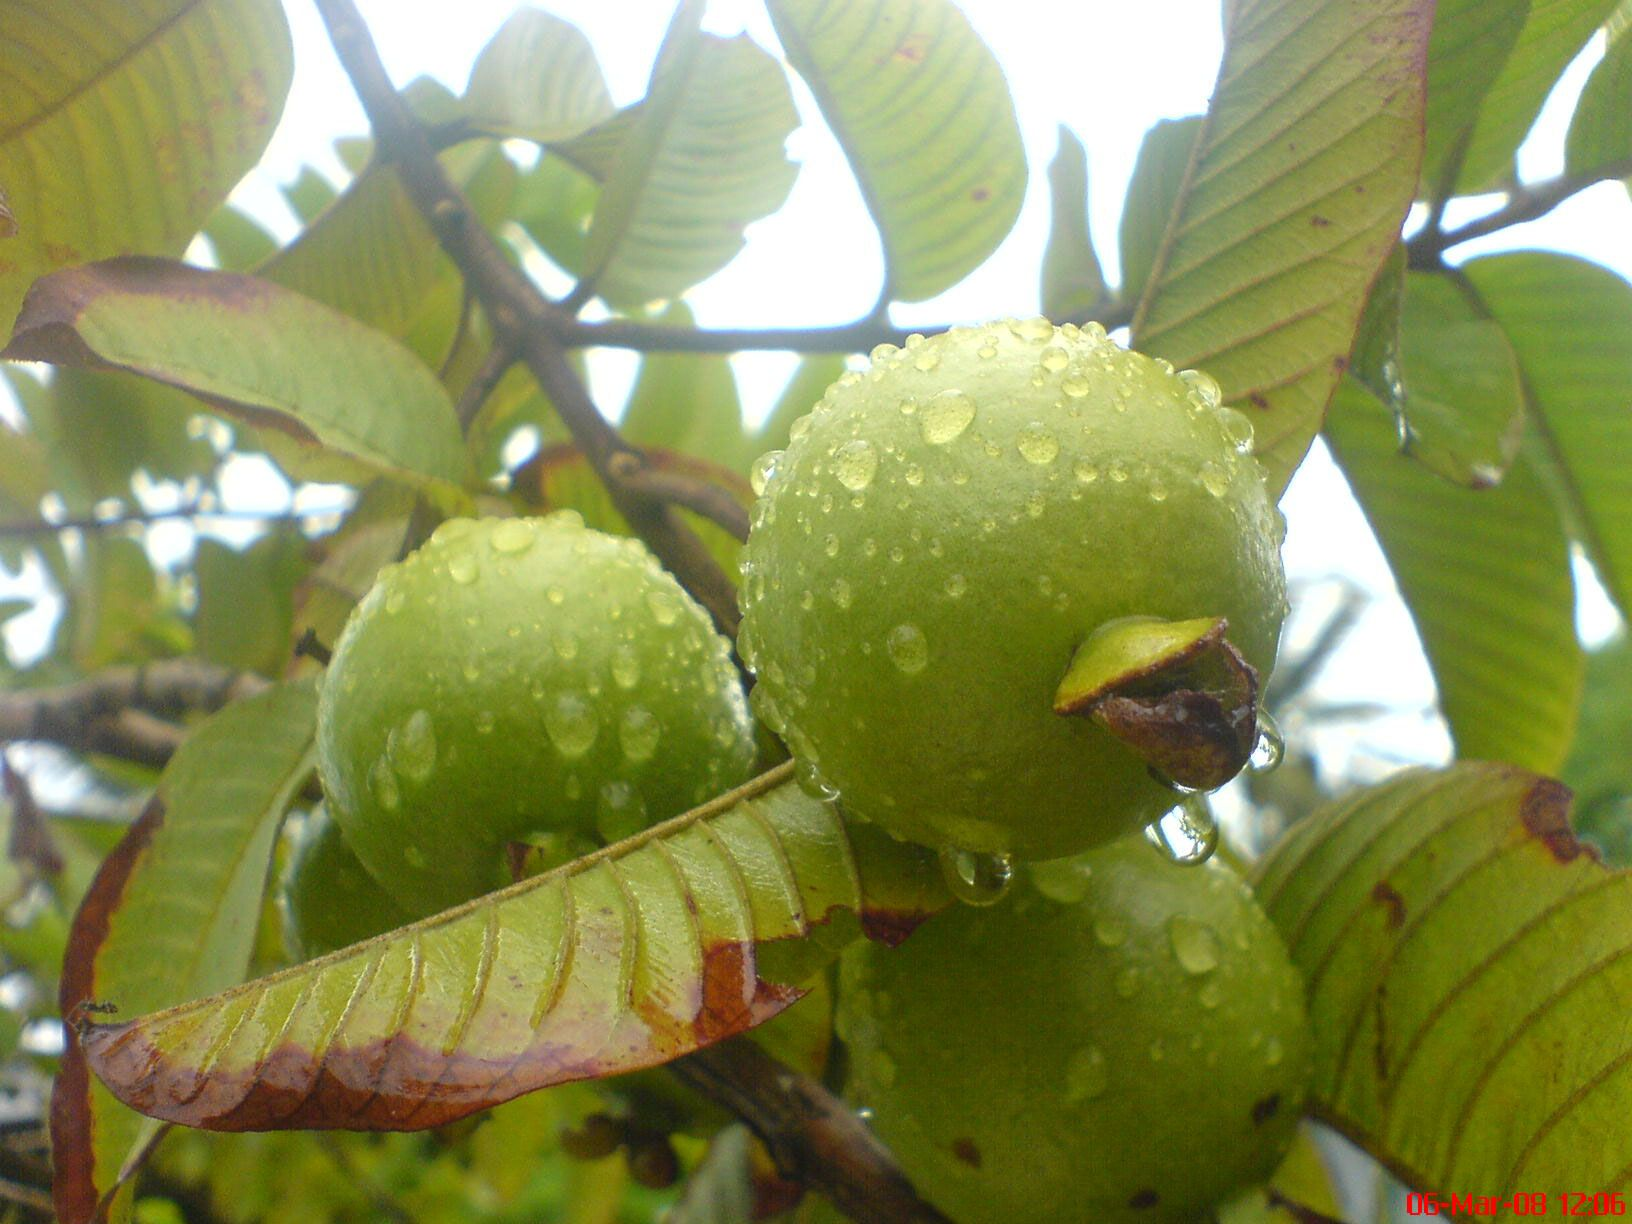 Guava Wallpaper Hd Wallpapers Backgrounds High Resolution Desktop Guava Fruit Guava Leaves Guava Benefits